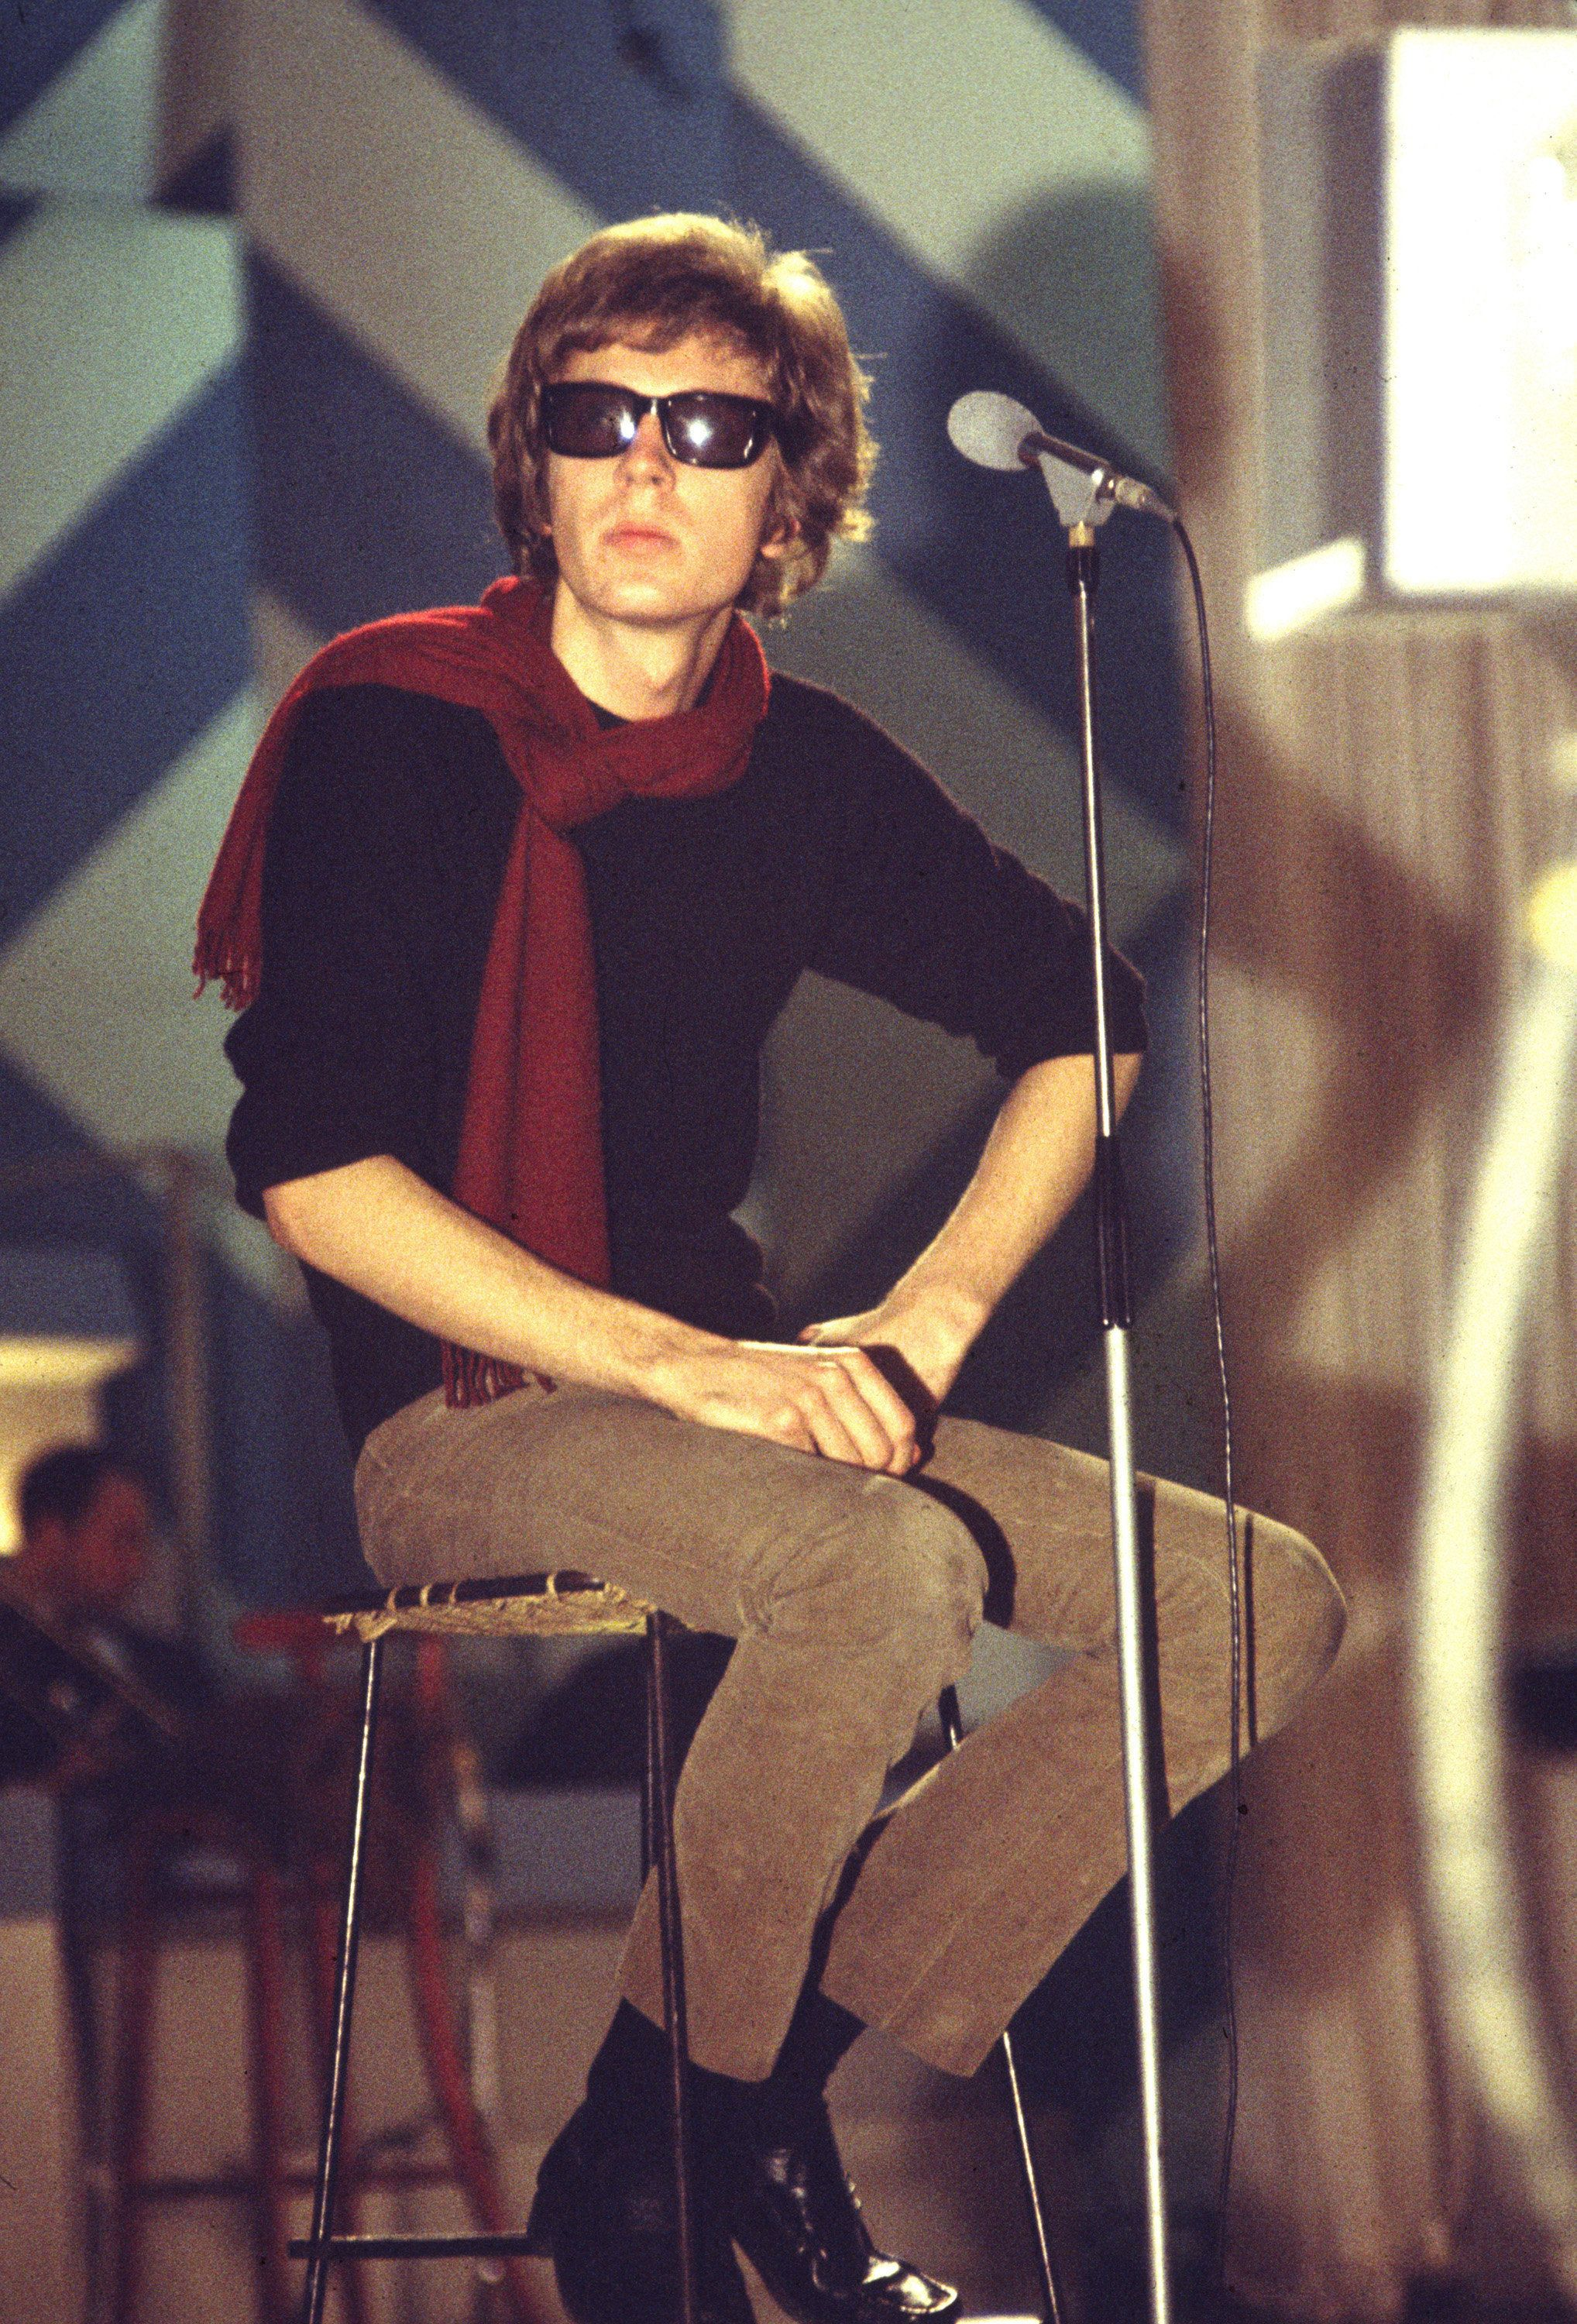 Influential singer, songwriter and producer Scott Walker died on March 22, 2019 at the age of 76.